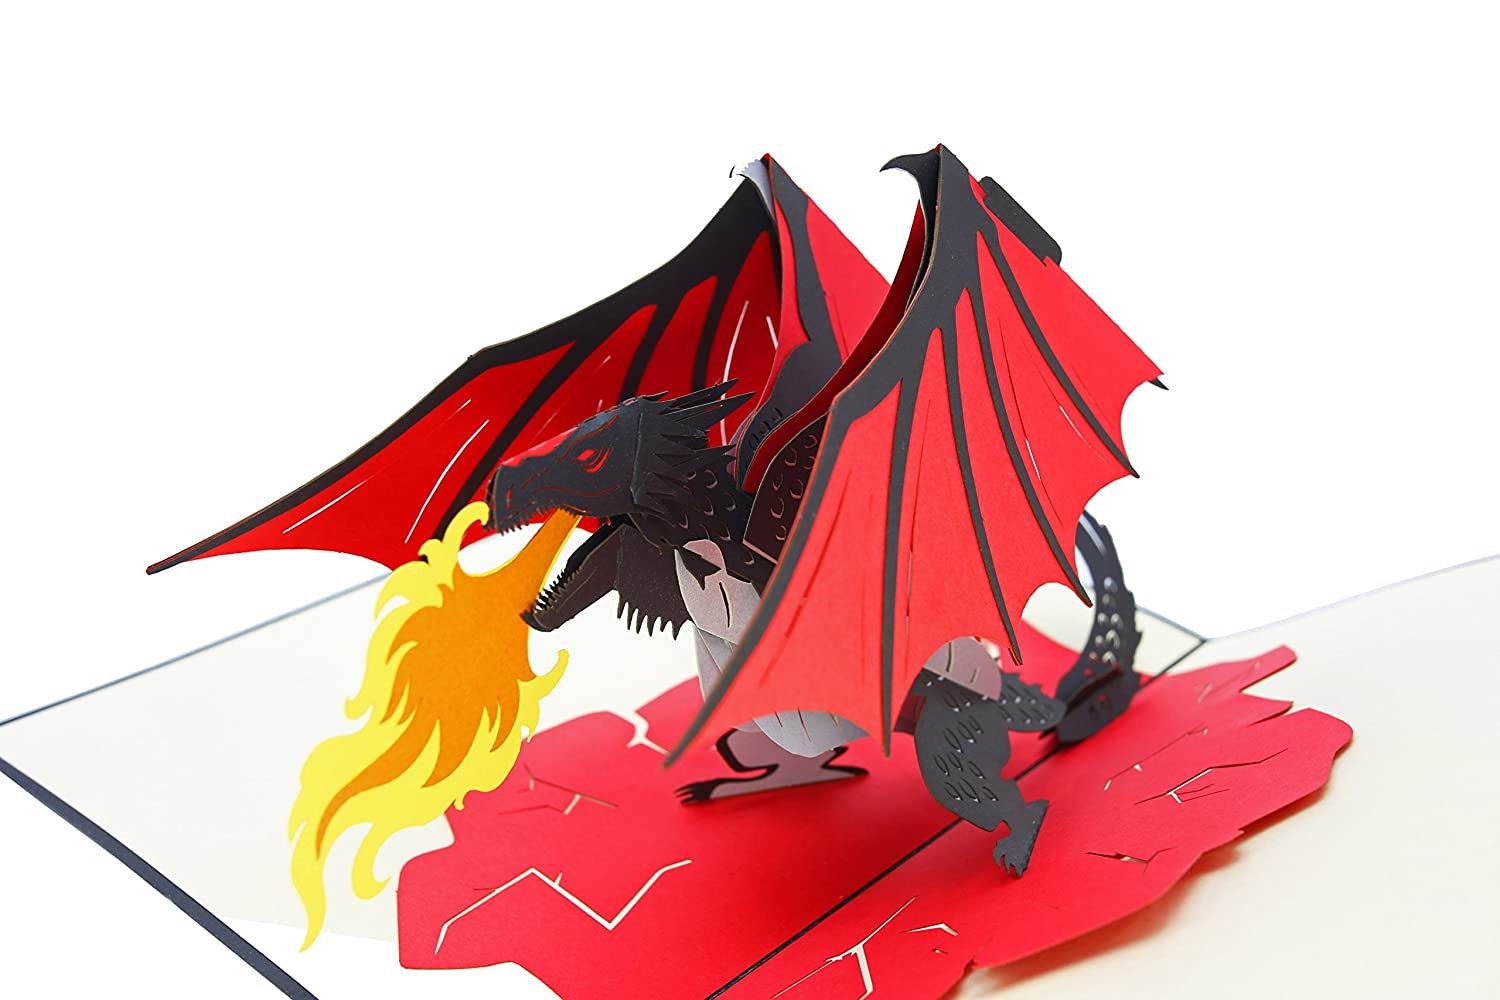 for Son Just Because Magical Gift LoTR PopLife Fire Breathing Dragon 3D Pop Up Fathers Day Card Dad Congratulations Pop Up Happy Birthday Card Fantasy Card Mythical Animal GoT Get Well